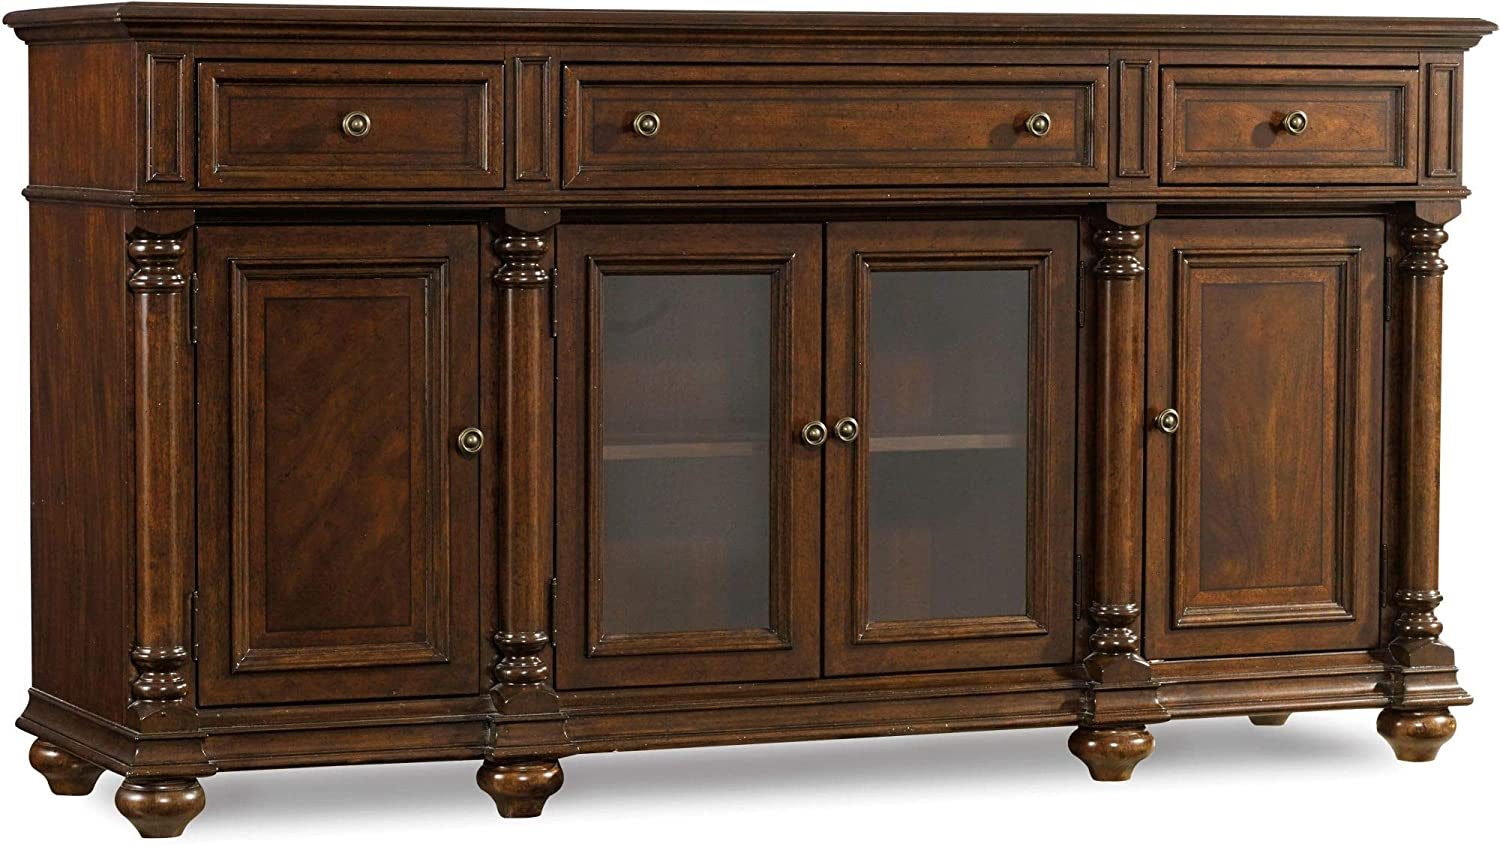 Hooker Furniture Leesburg Buffet in Mahogany